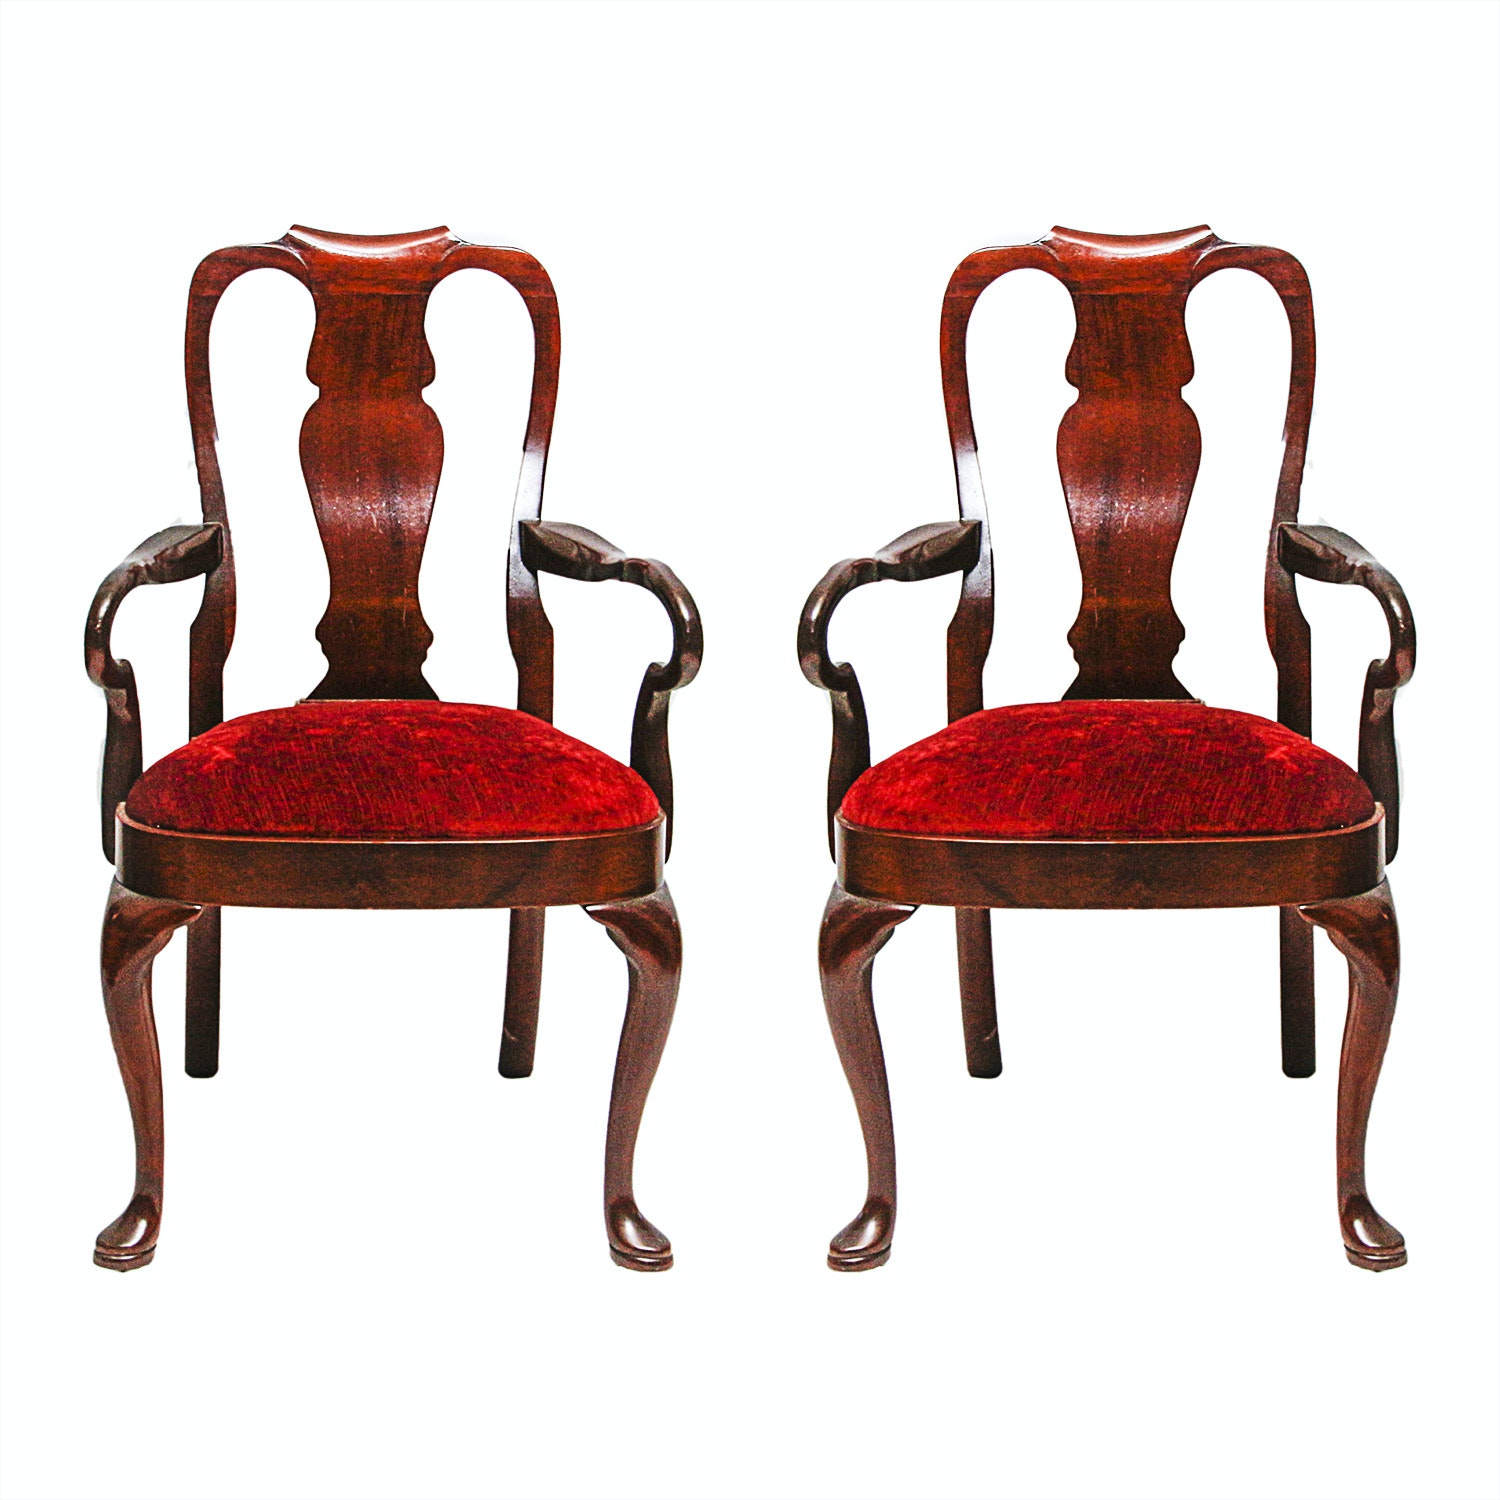 Pair of Queen Anne Style Fiddleback Armchairs